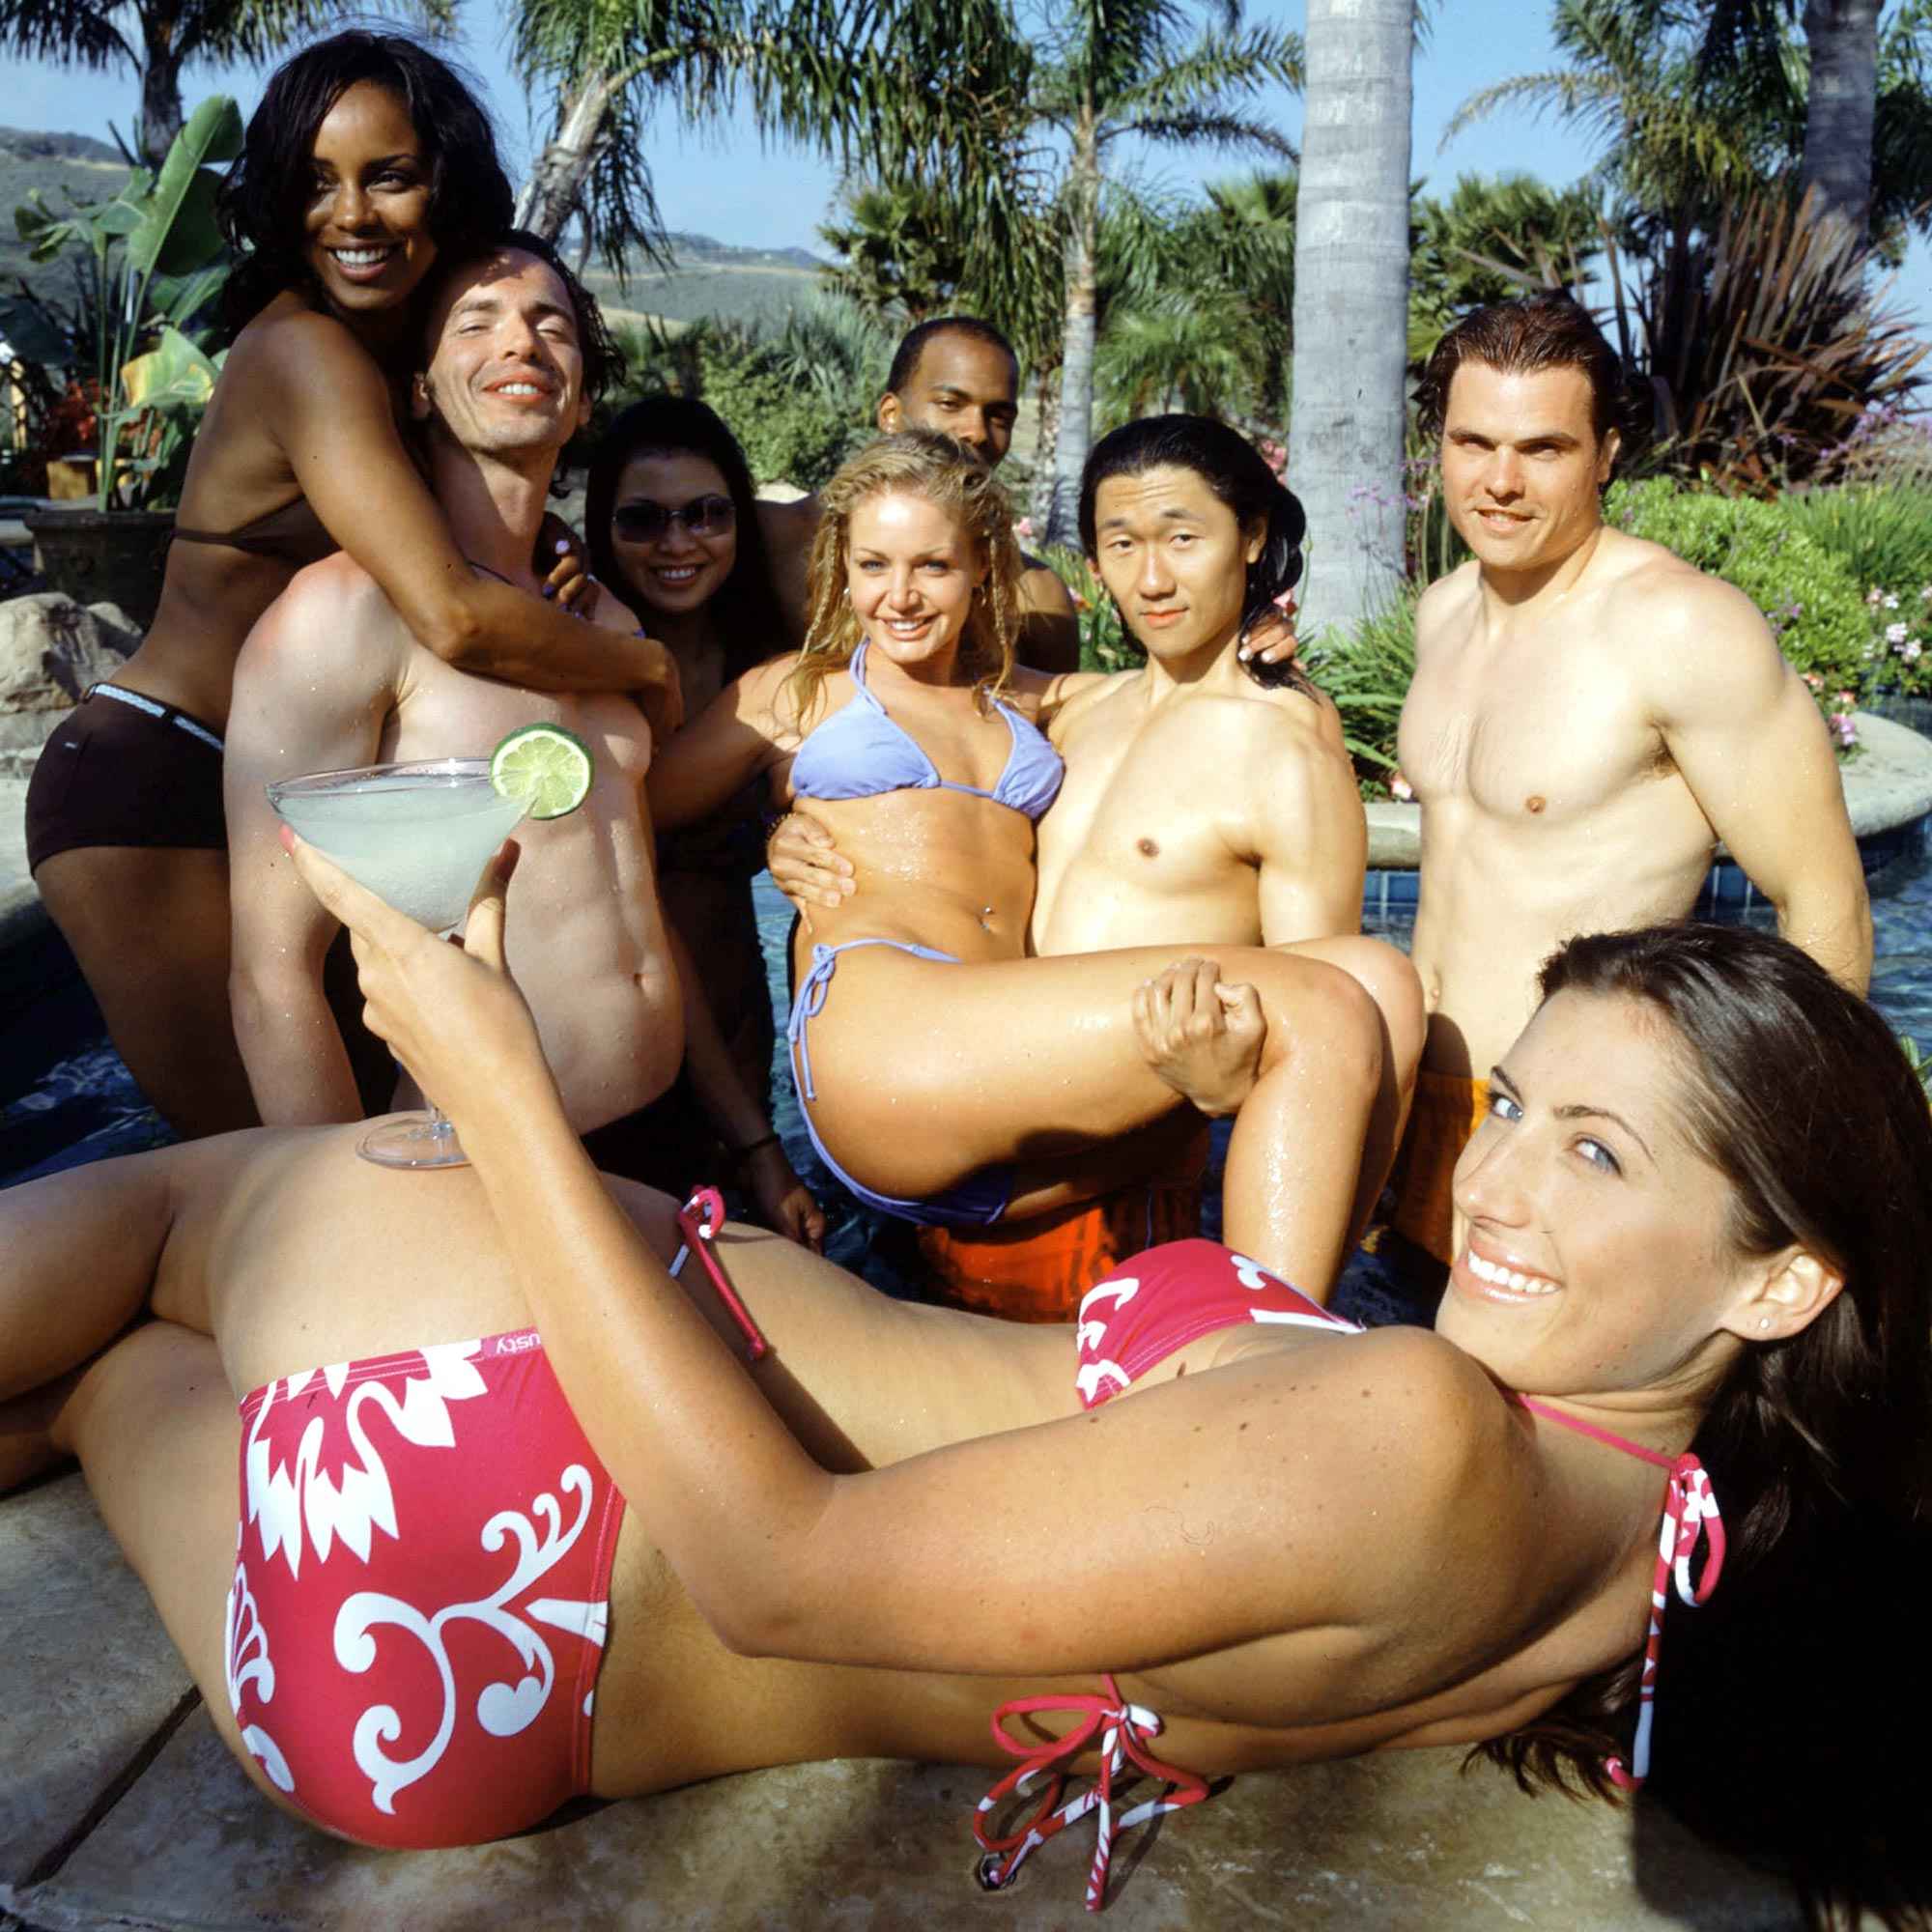 PARADISE HOTEL, contestants, Summer 2003, TM and Copyright © 20th Century Fox Film Corp. All rights